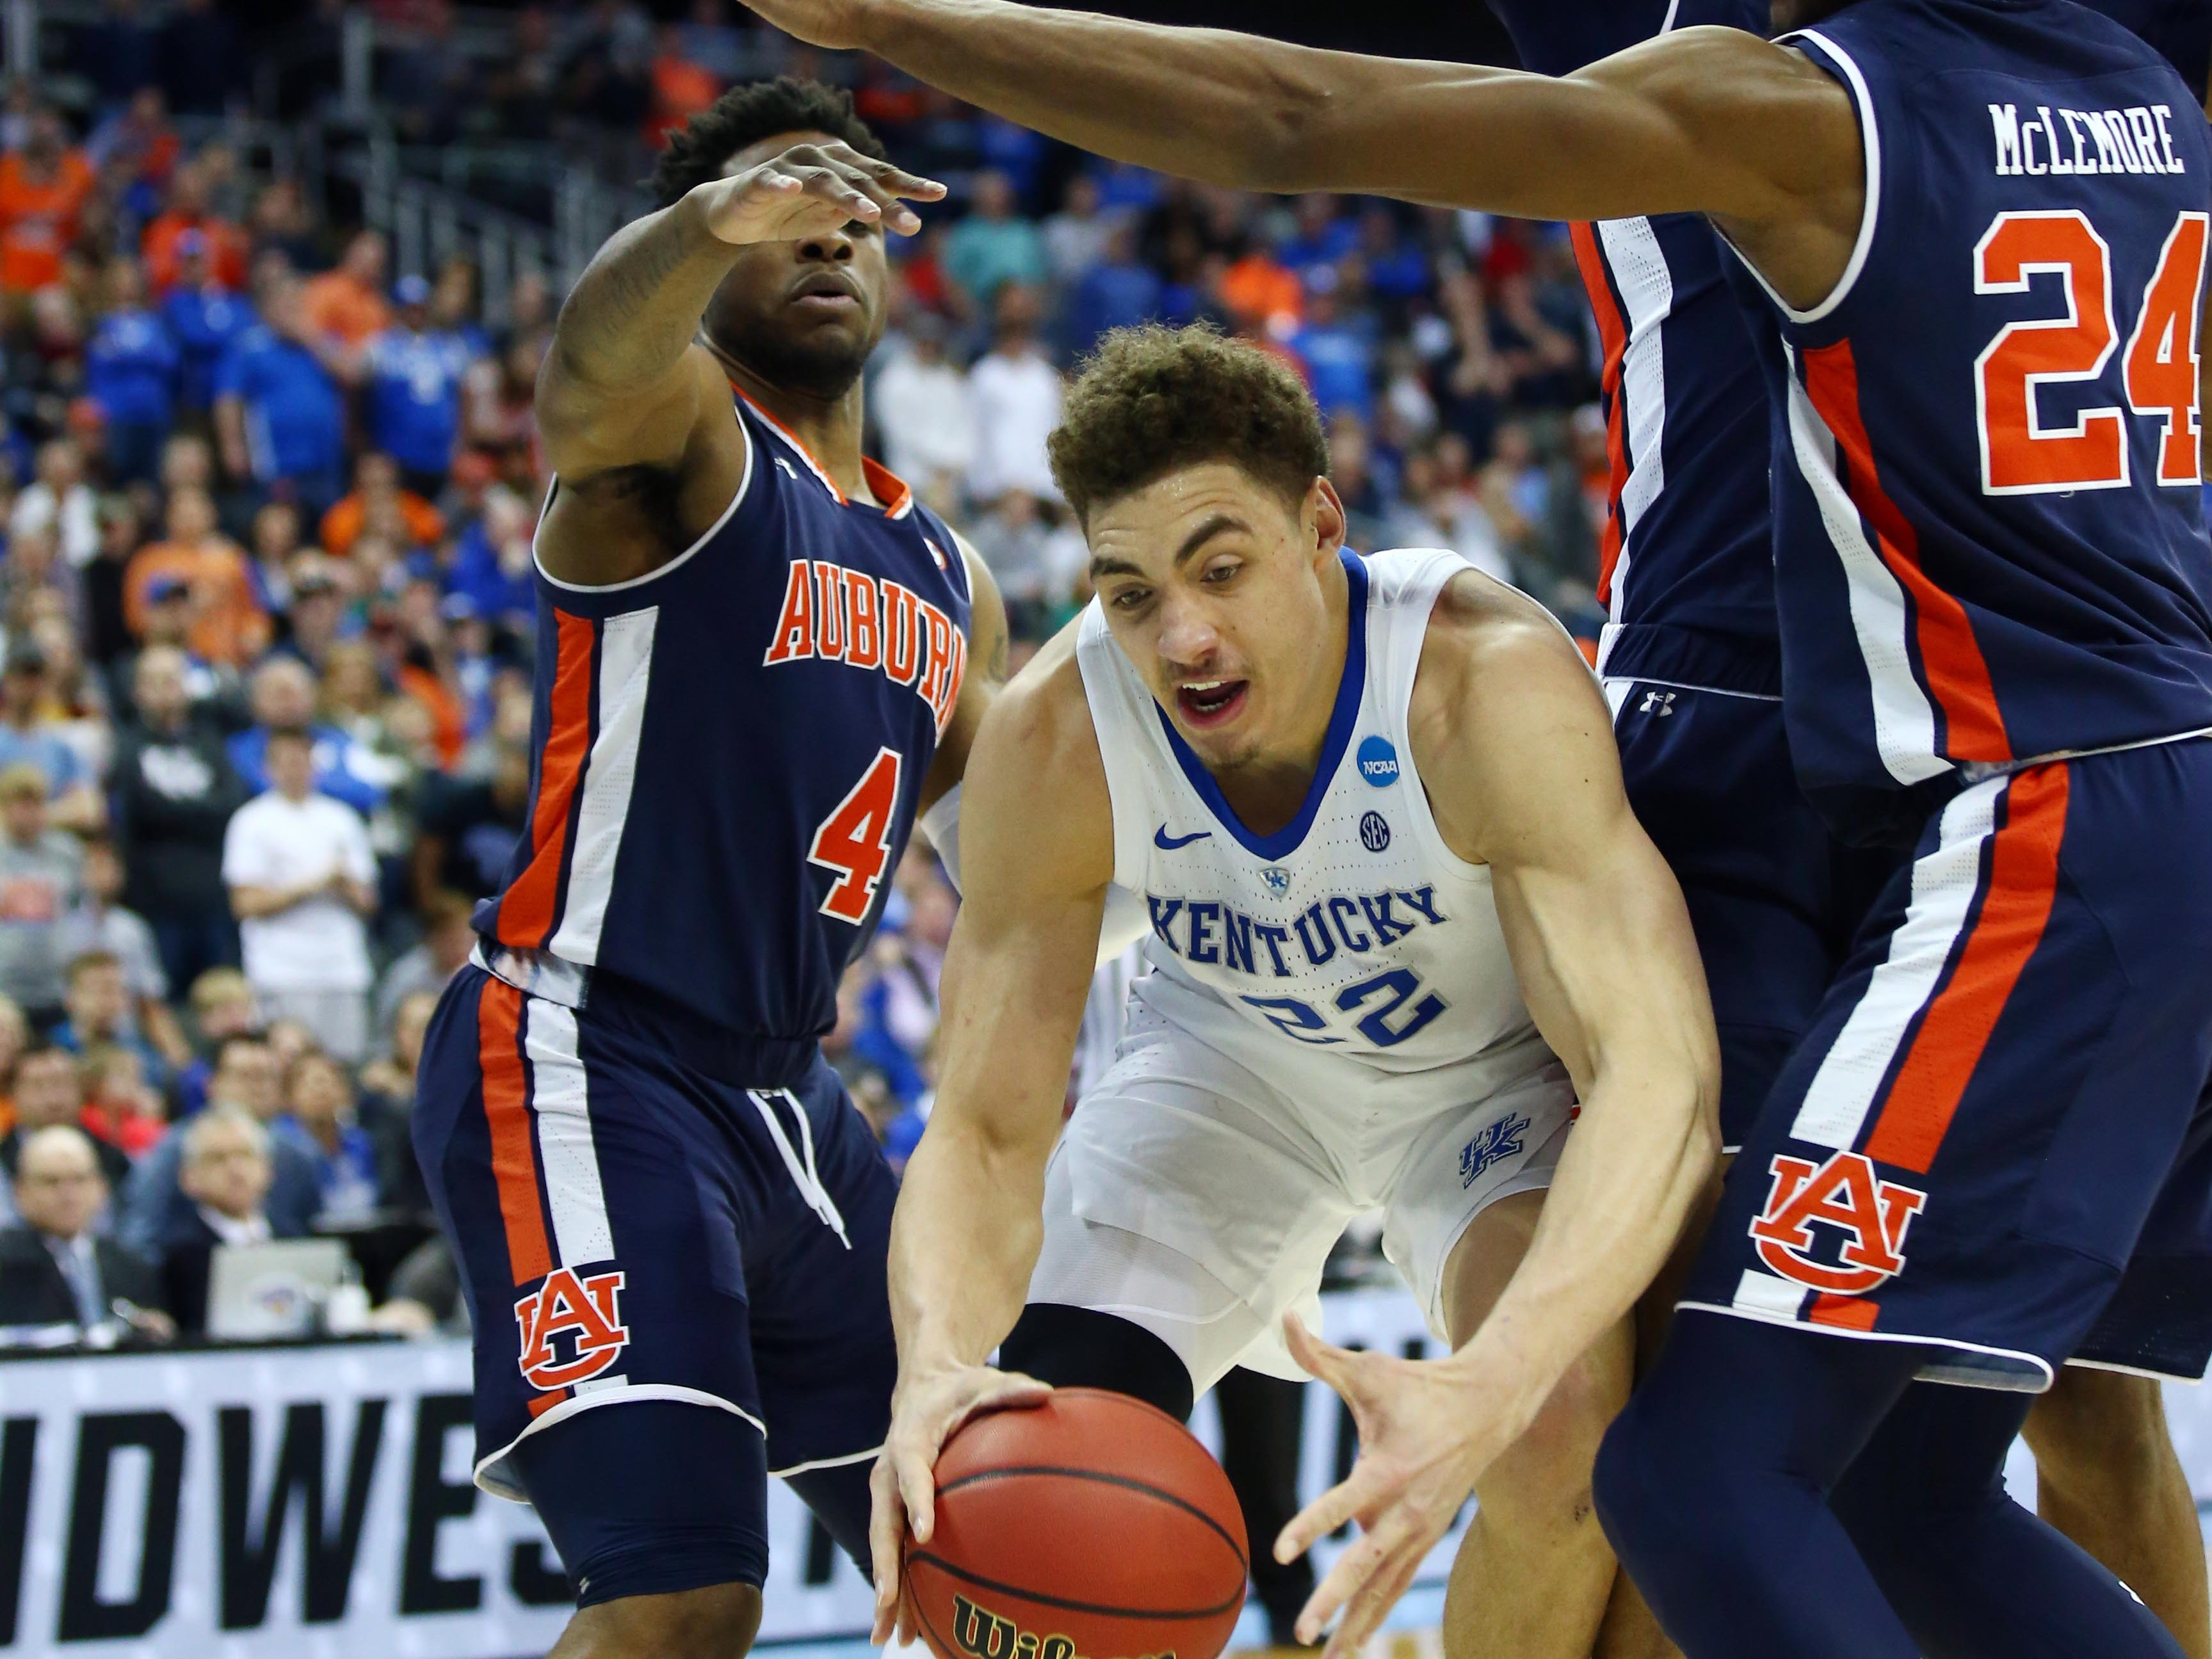 Mar 31, 2019; Kansas City, MO, United States; Kentucky Wildcats forward Reid Travis (22) tries to get between Auburn Tigers guard Malik Dunbar (4) and forward Anfernee McLemore (24) during the second half in the championship game of the midwest regional of the 2019 NCAA Tournament at Sprint Center. Mandatory Credit: Jay Biggerstaff-USA TODAY Sports